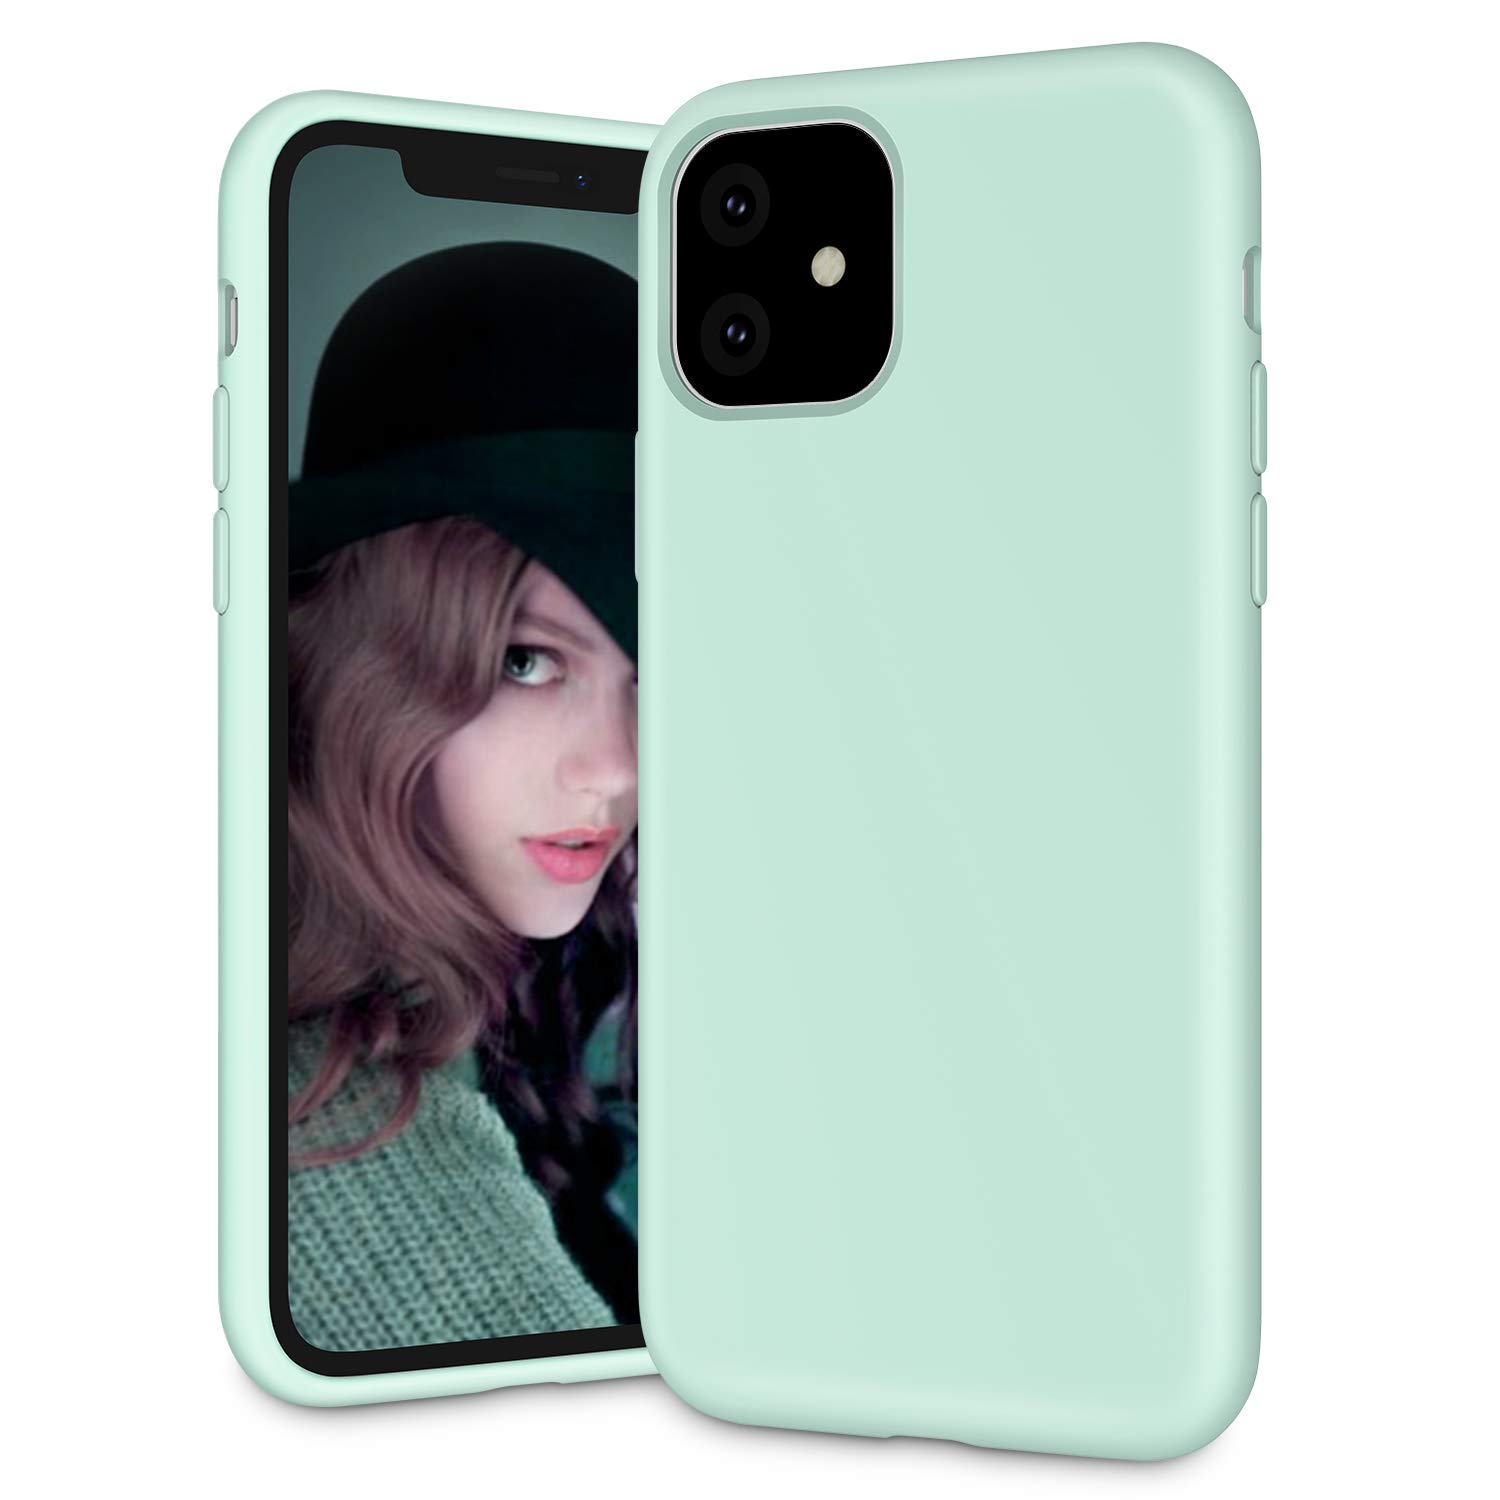 """Soke iPhone 11 Case, iPhone 6.1 Inch Case 2019, Shockproof Soft Silicone Case Cover with Premium Microfiber Lining [Full-Body Protection + Precise Cutouts] for iPhone 11 6.1"""",Mint Green"""